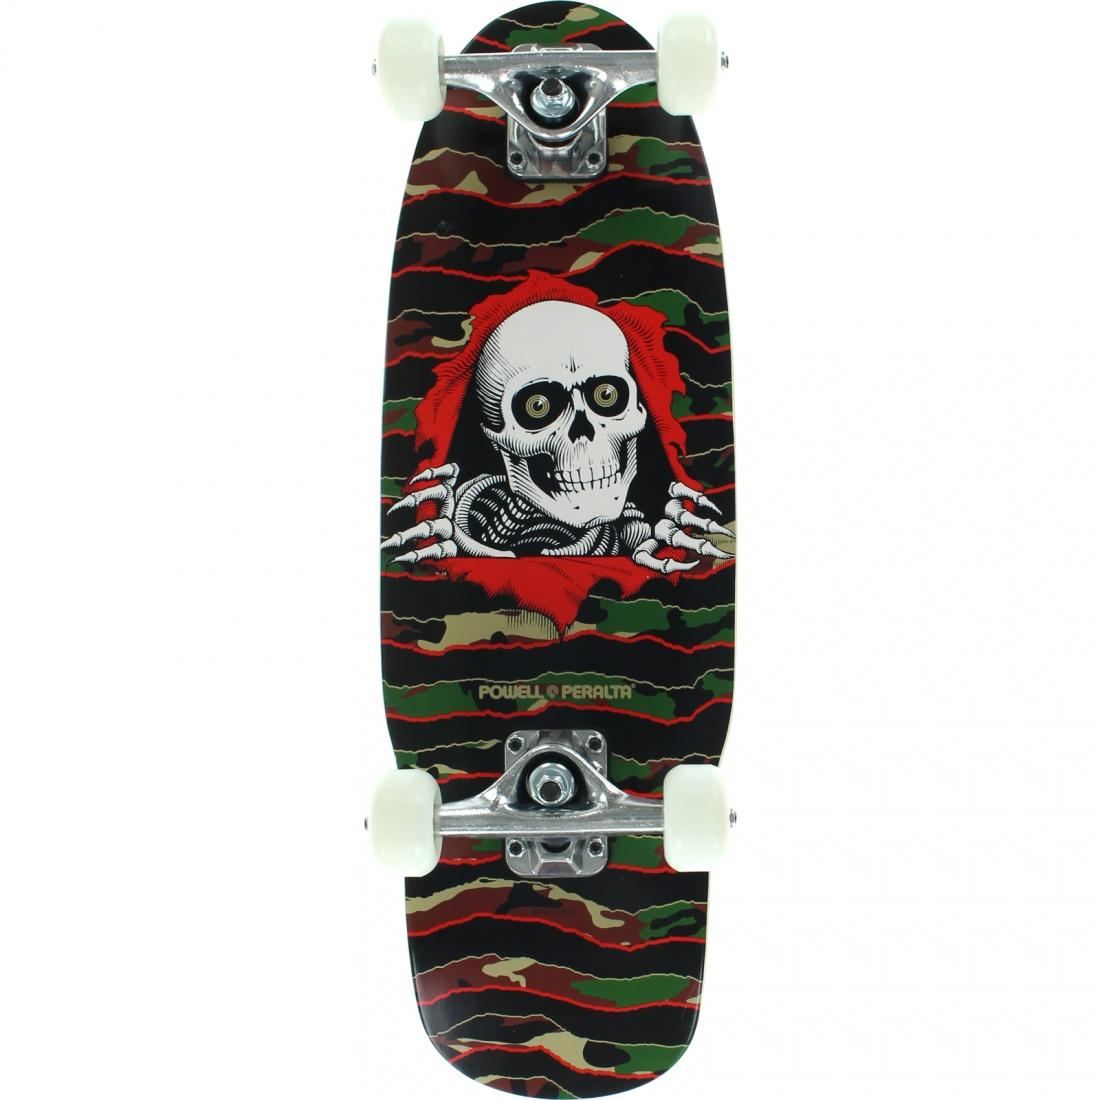 Powell Peralta Скейтборд в сборе Powell Peralta Cab Dragon Cosmic Green 7.5 powell peralta скейтборд в сборе powell peralta micro mini ripper 05 camo 7 5